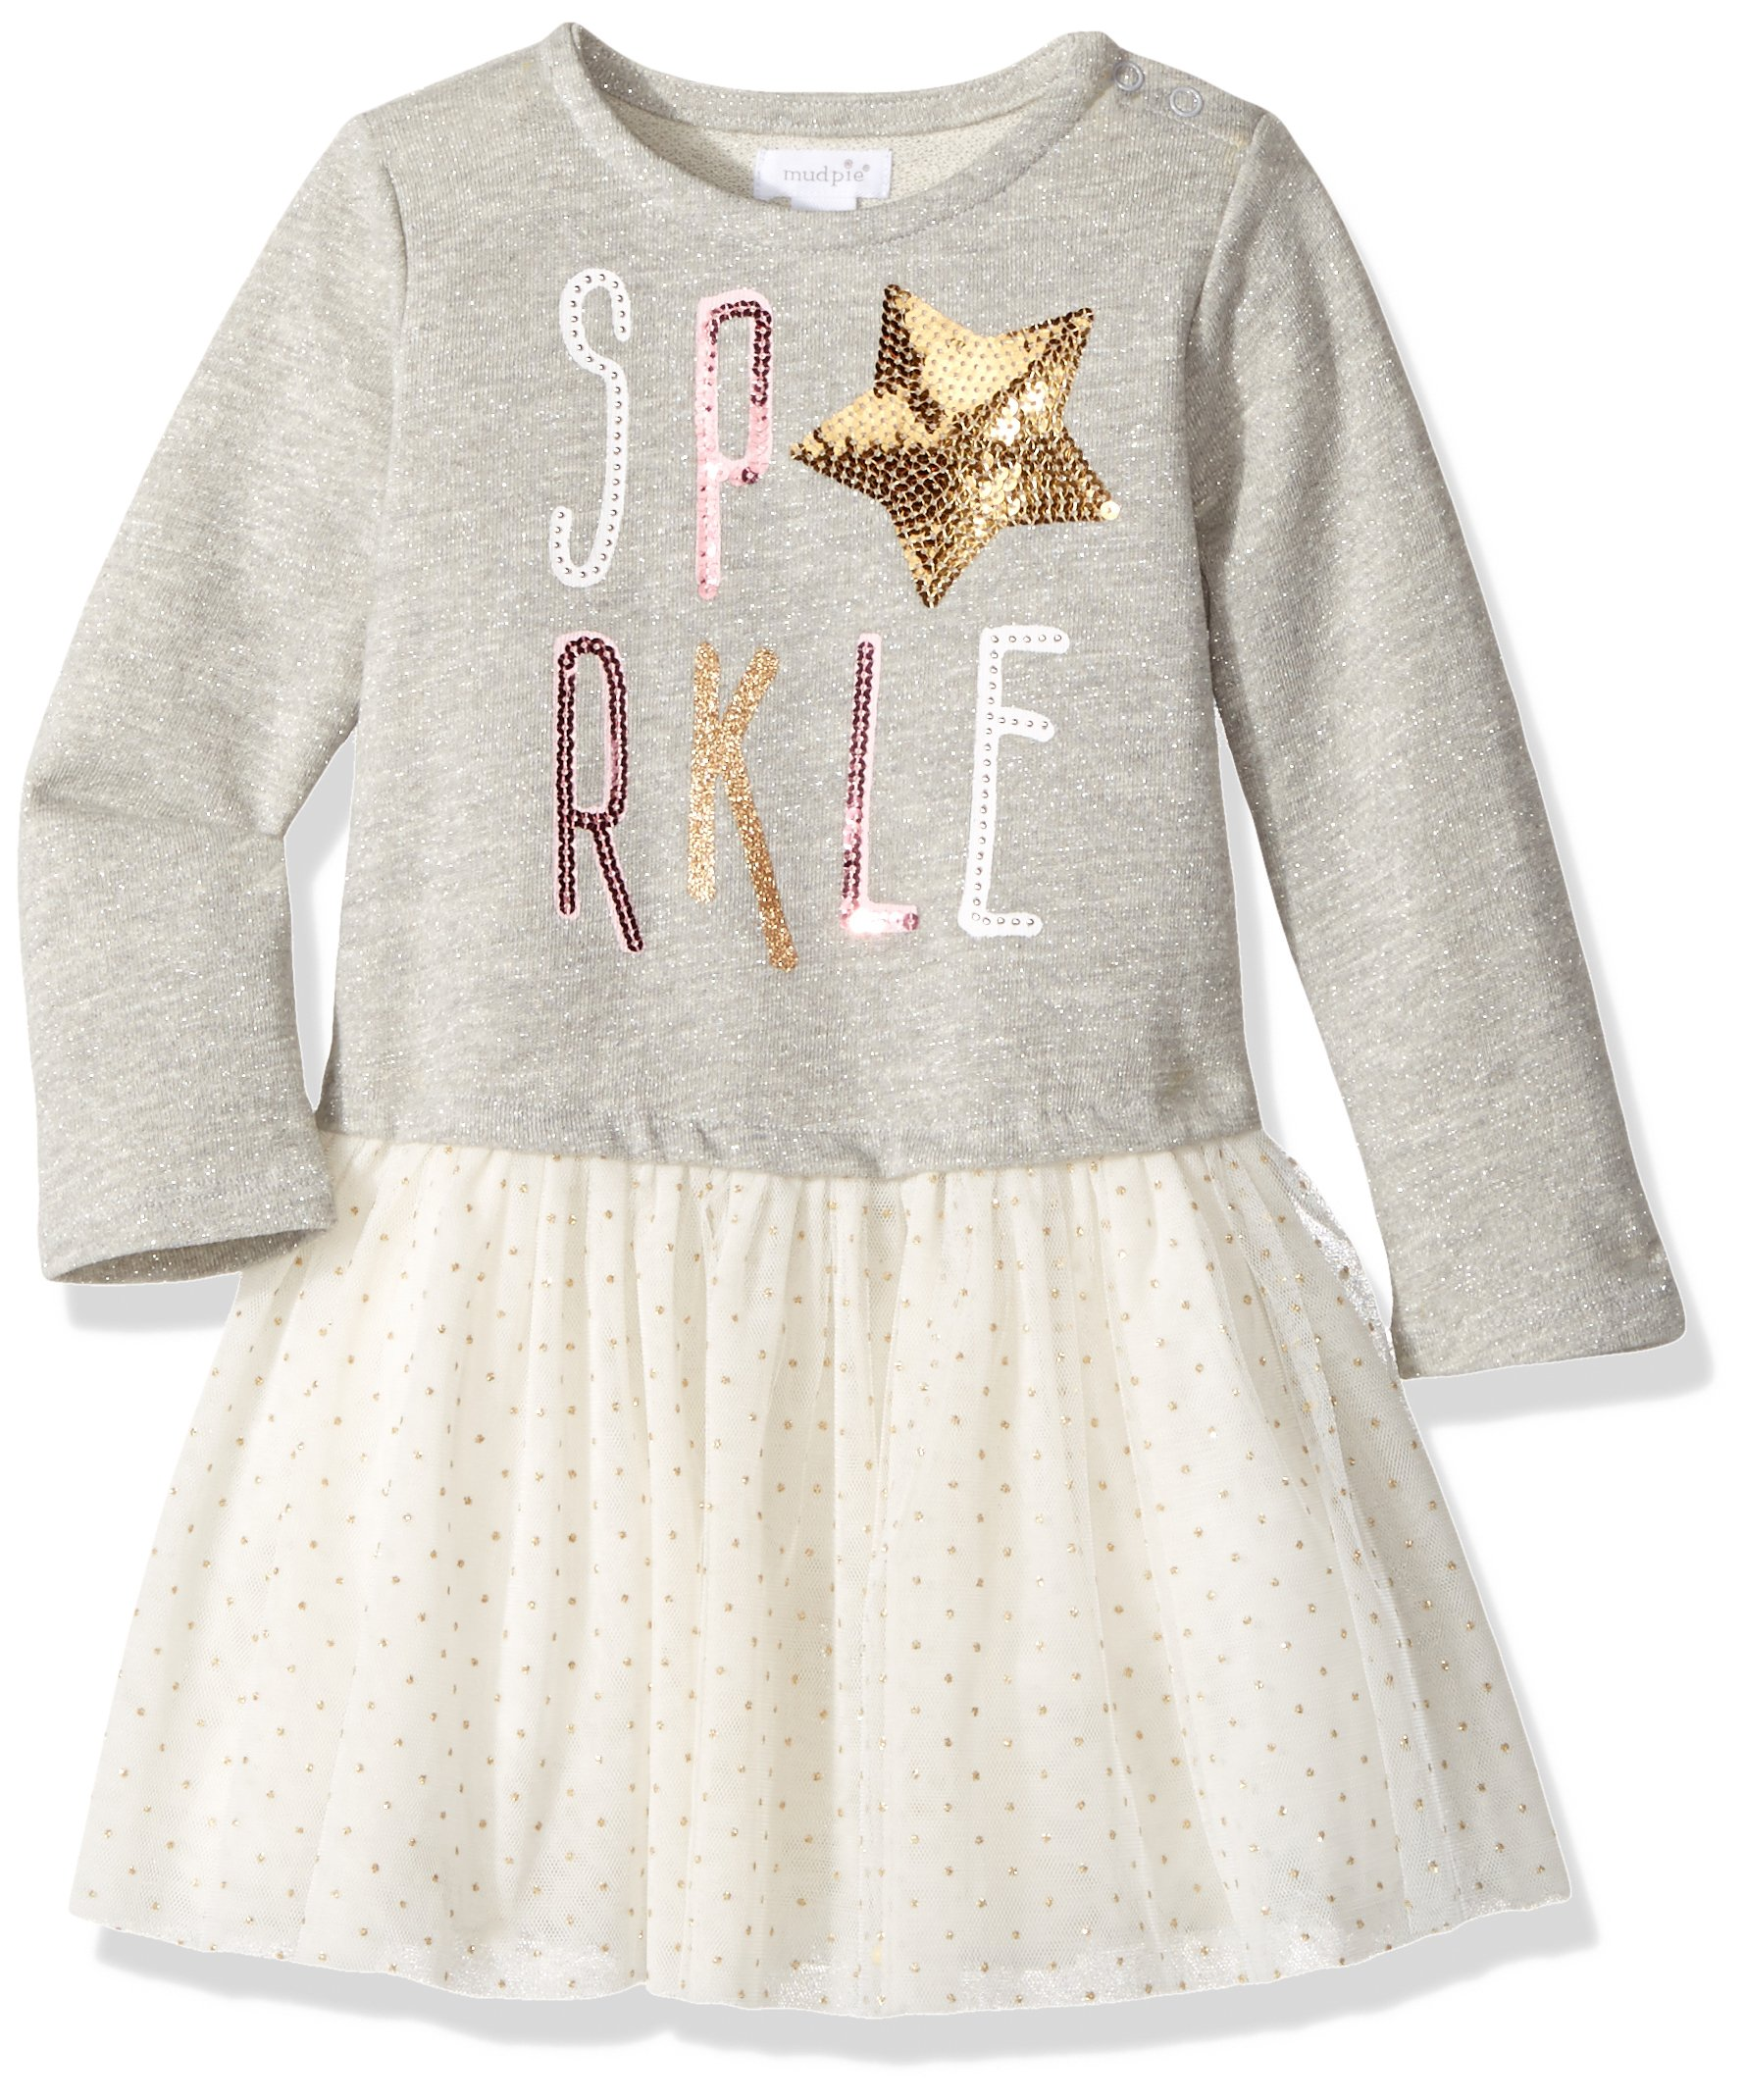 Mud Pie Baby Girls' Toddler Holiday Sparkle Long Sleeve Glitter Tutu Dress, Gray, 2T by Mud Pie